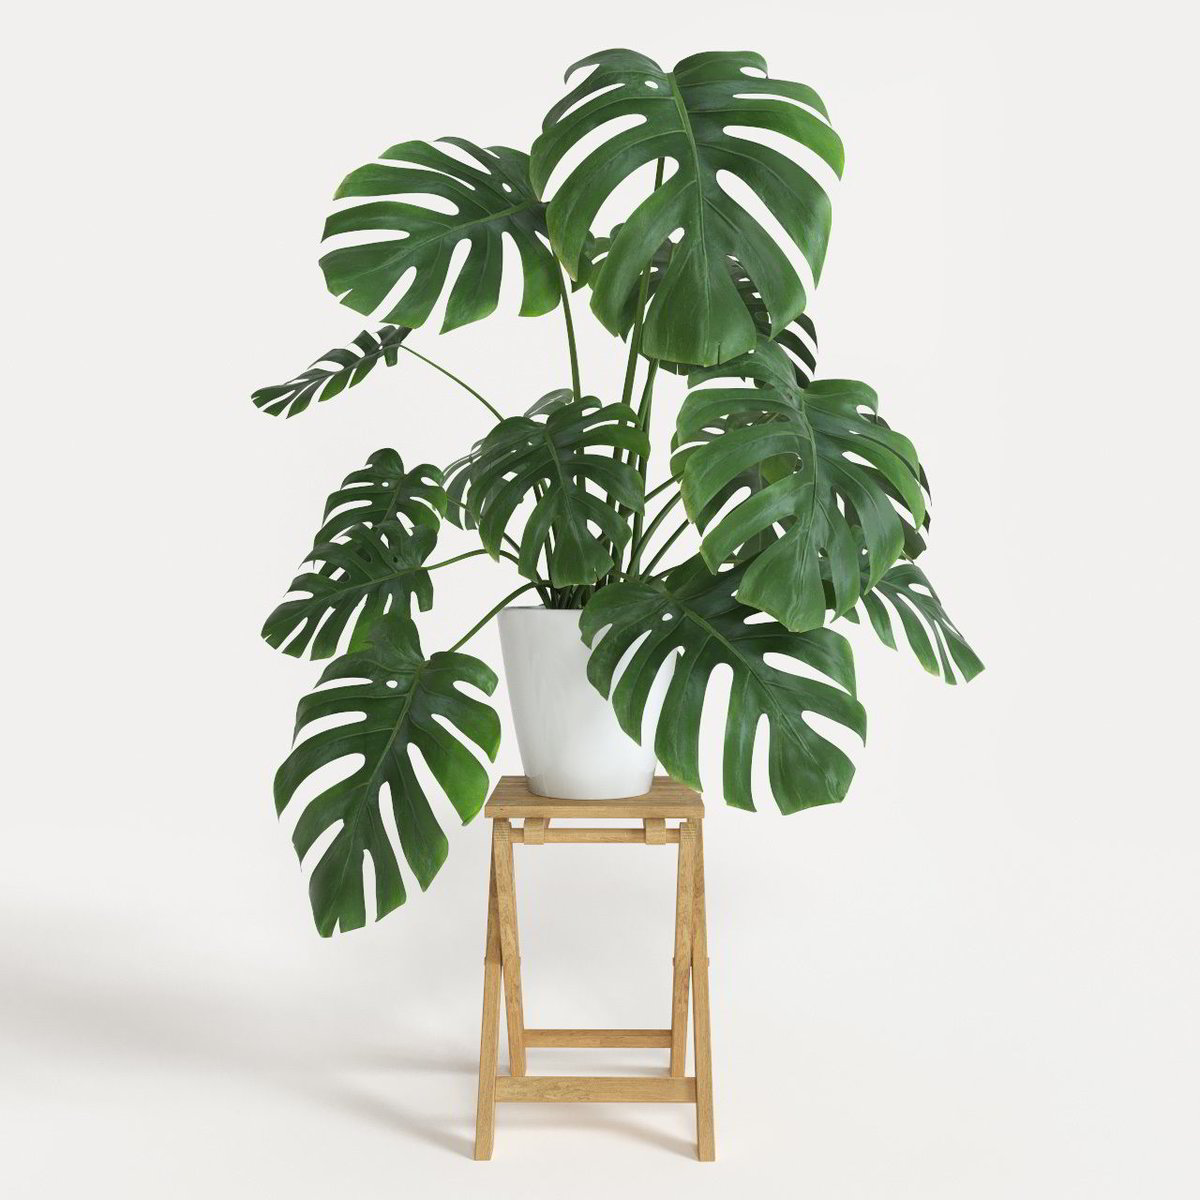 Large Leaf Houseplant Monstera Deliciosa Plant Portrait Aka Swiss Cheese Plant